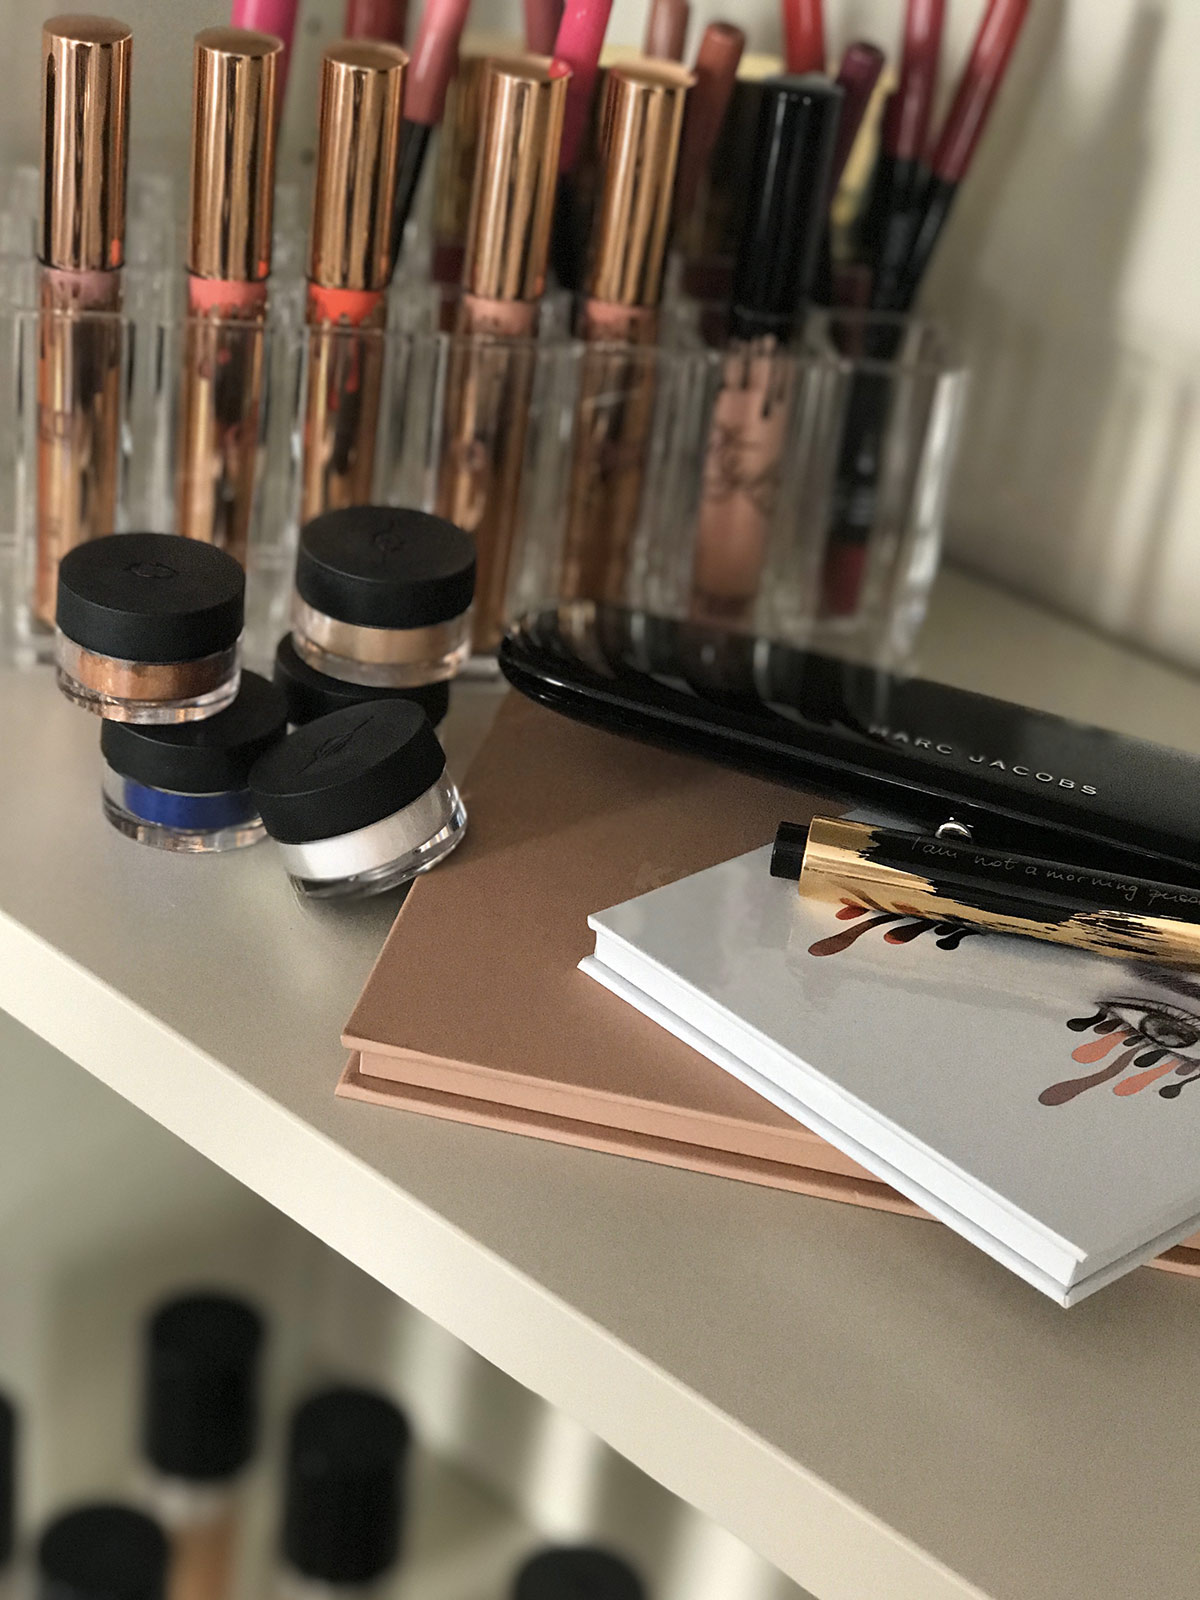 anan-make up studio-blush-brows-brides-maison de beauté-marseille-institut-salon-maquillage-make up-make up for ever-marc jacobs-yves saint lourent-touche éclat-kylie jenner-kkw-kim kardashian west